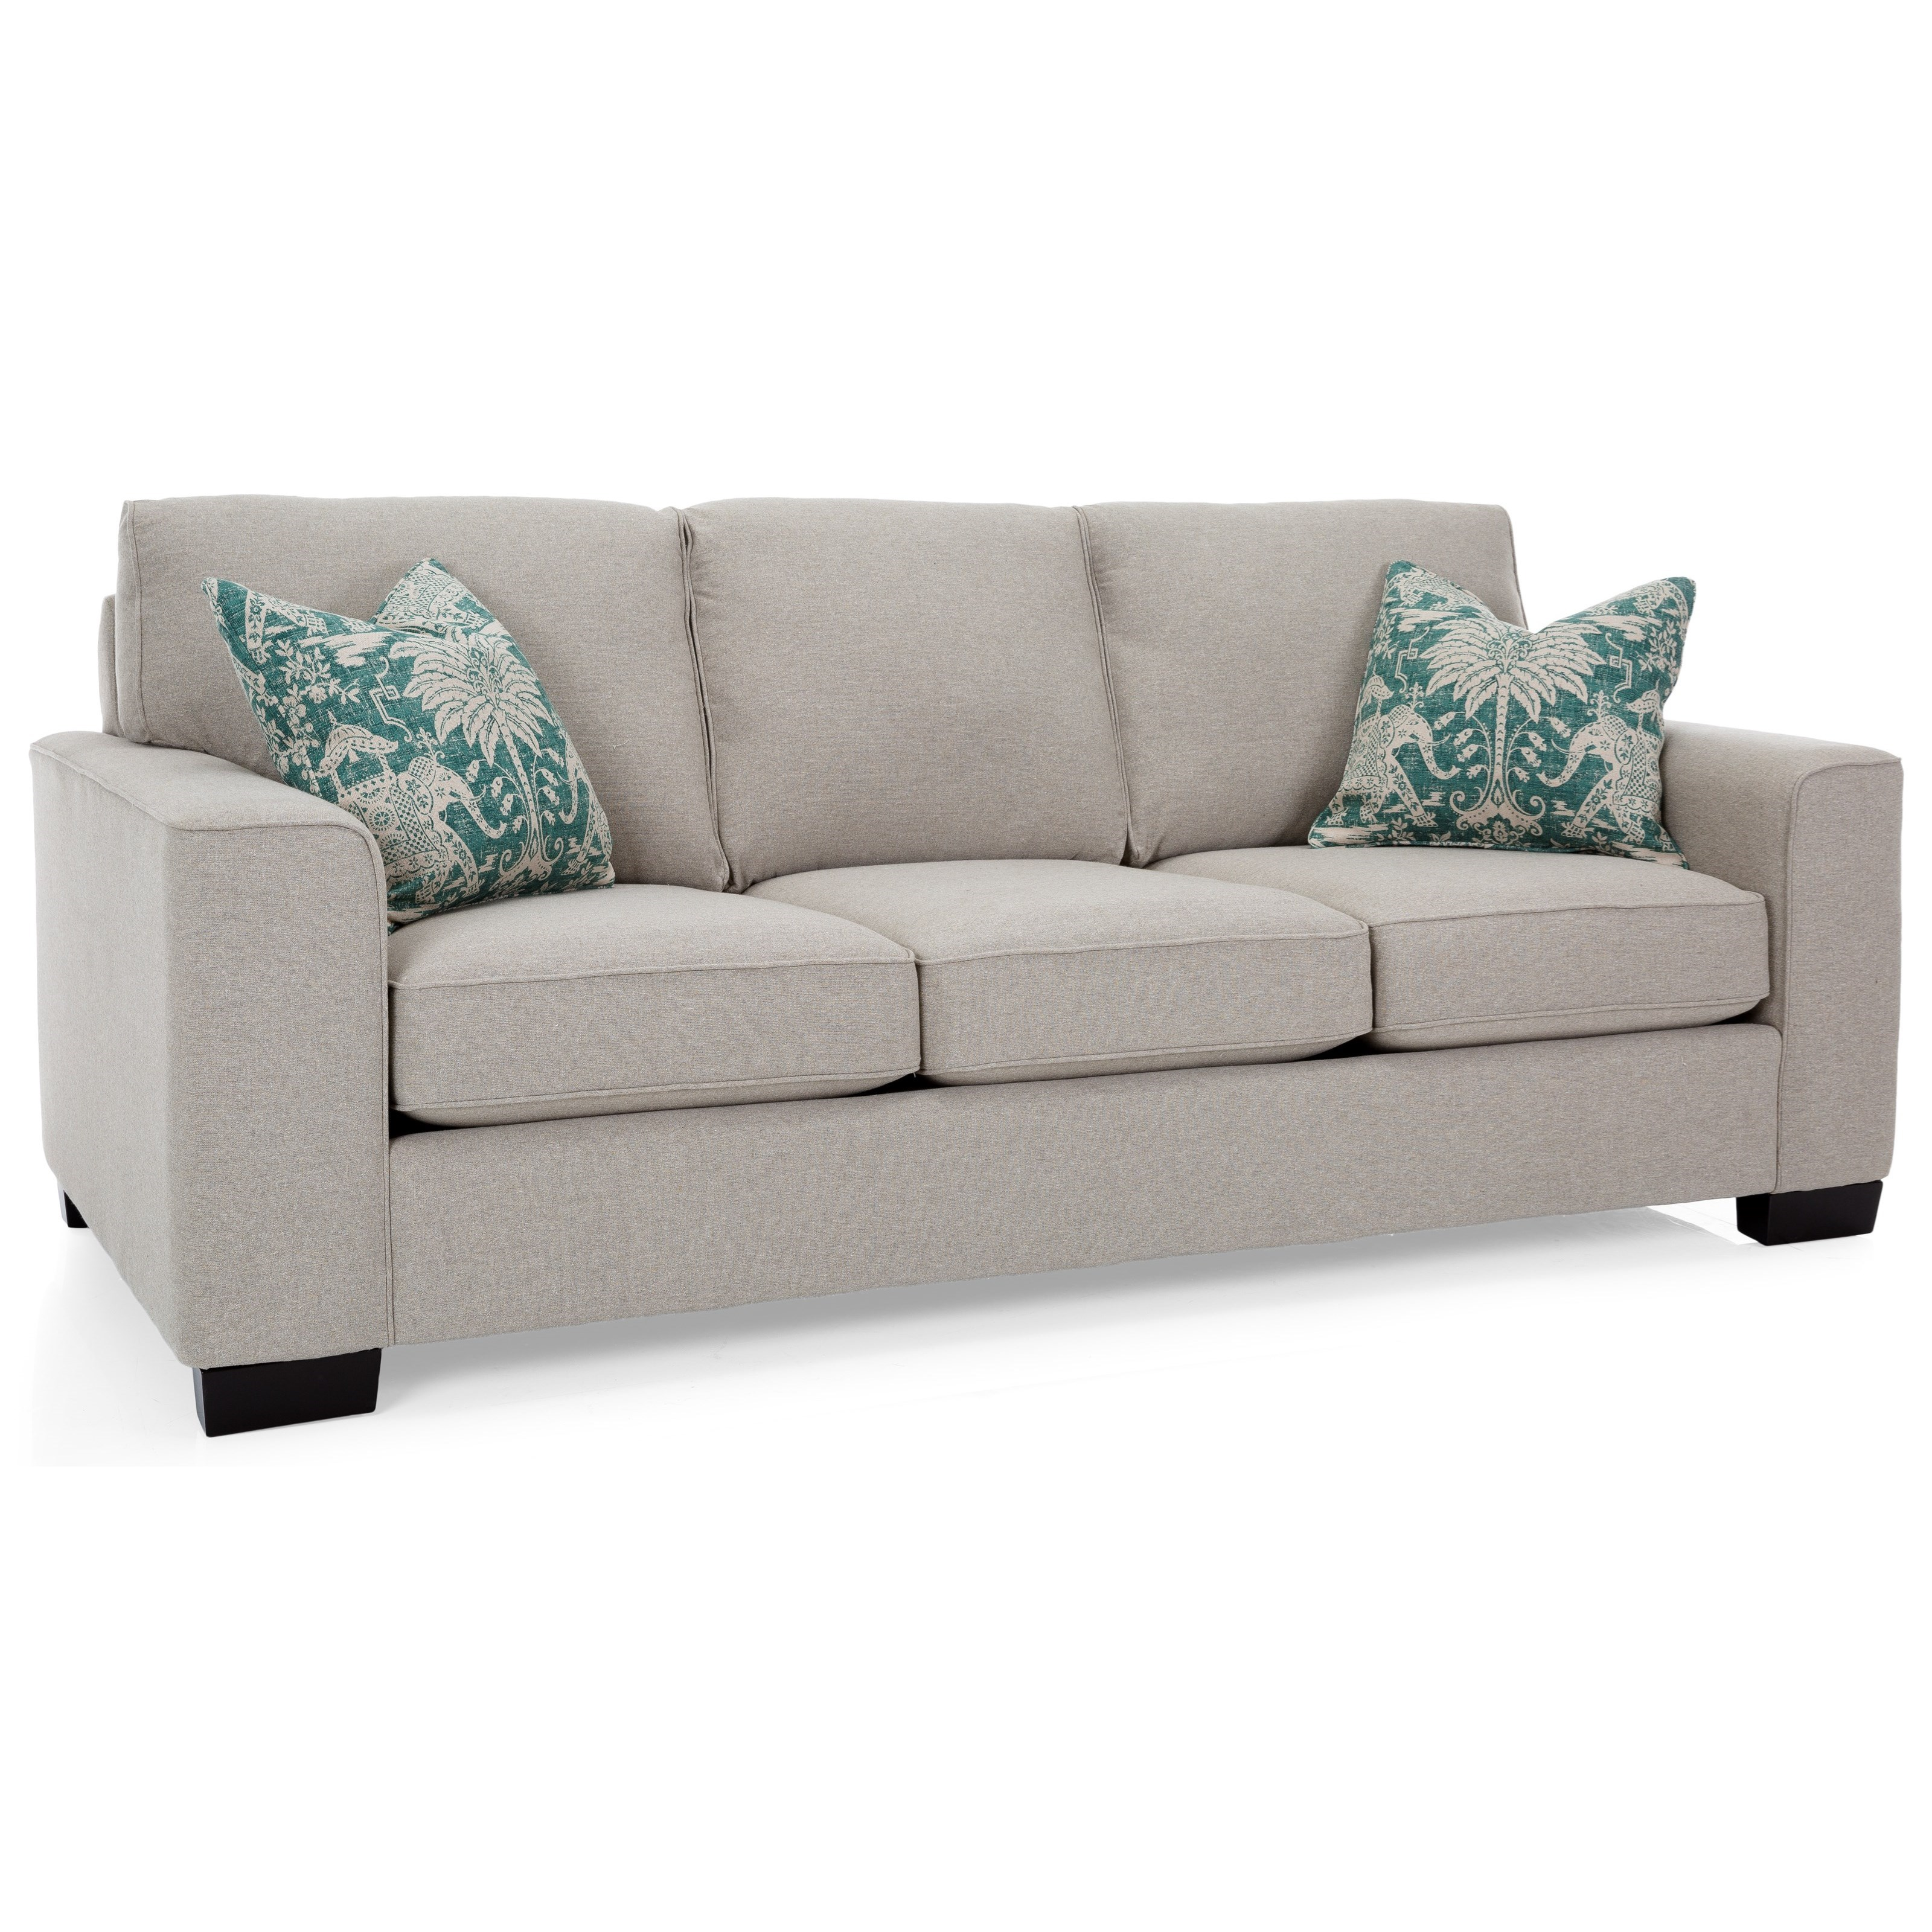 2483 Sofa by Decor-Rest at Stoney Creek Furniture